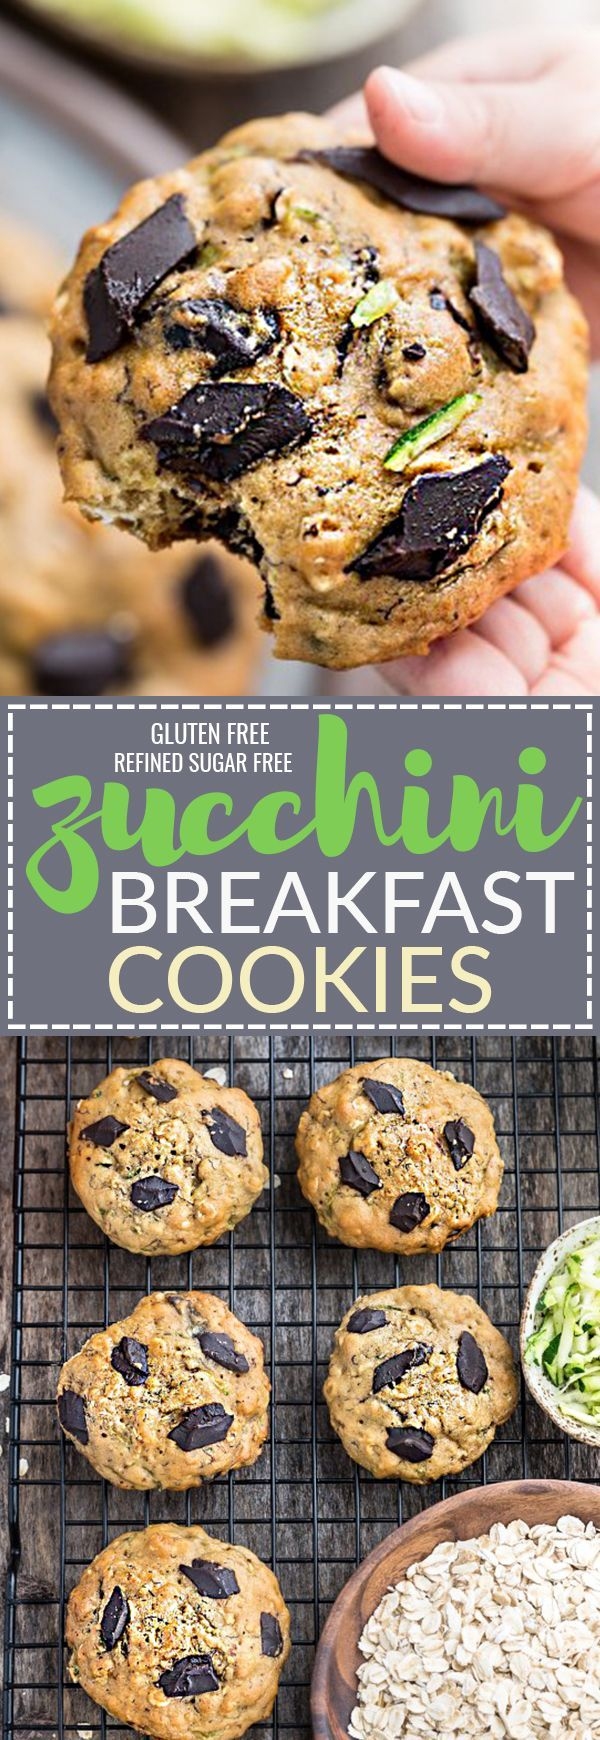 soft and chewy flourless Zucchini Breakfast Cookies make the perfect healthy breakfast and on-the-go snack! Best of all, they're so easy to make with no mixer required. Absolutely delicious and gluten free, refined sugar free and no butter!These soft and chewy flourless Zucchini Breakfast Cookies make the perfect healthy breakfast and on-the-go ...